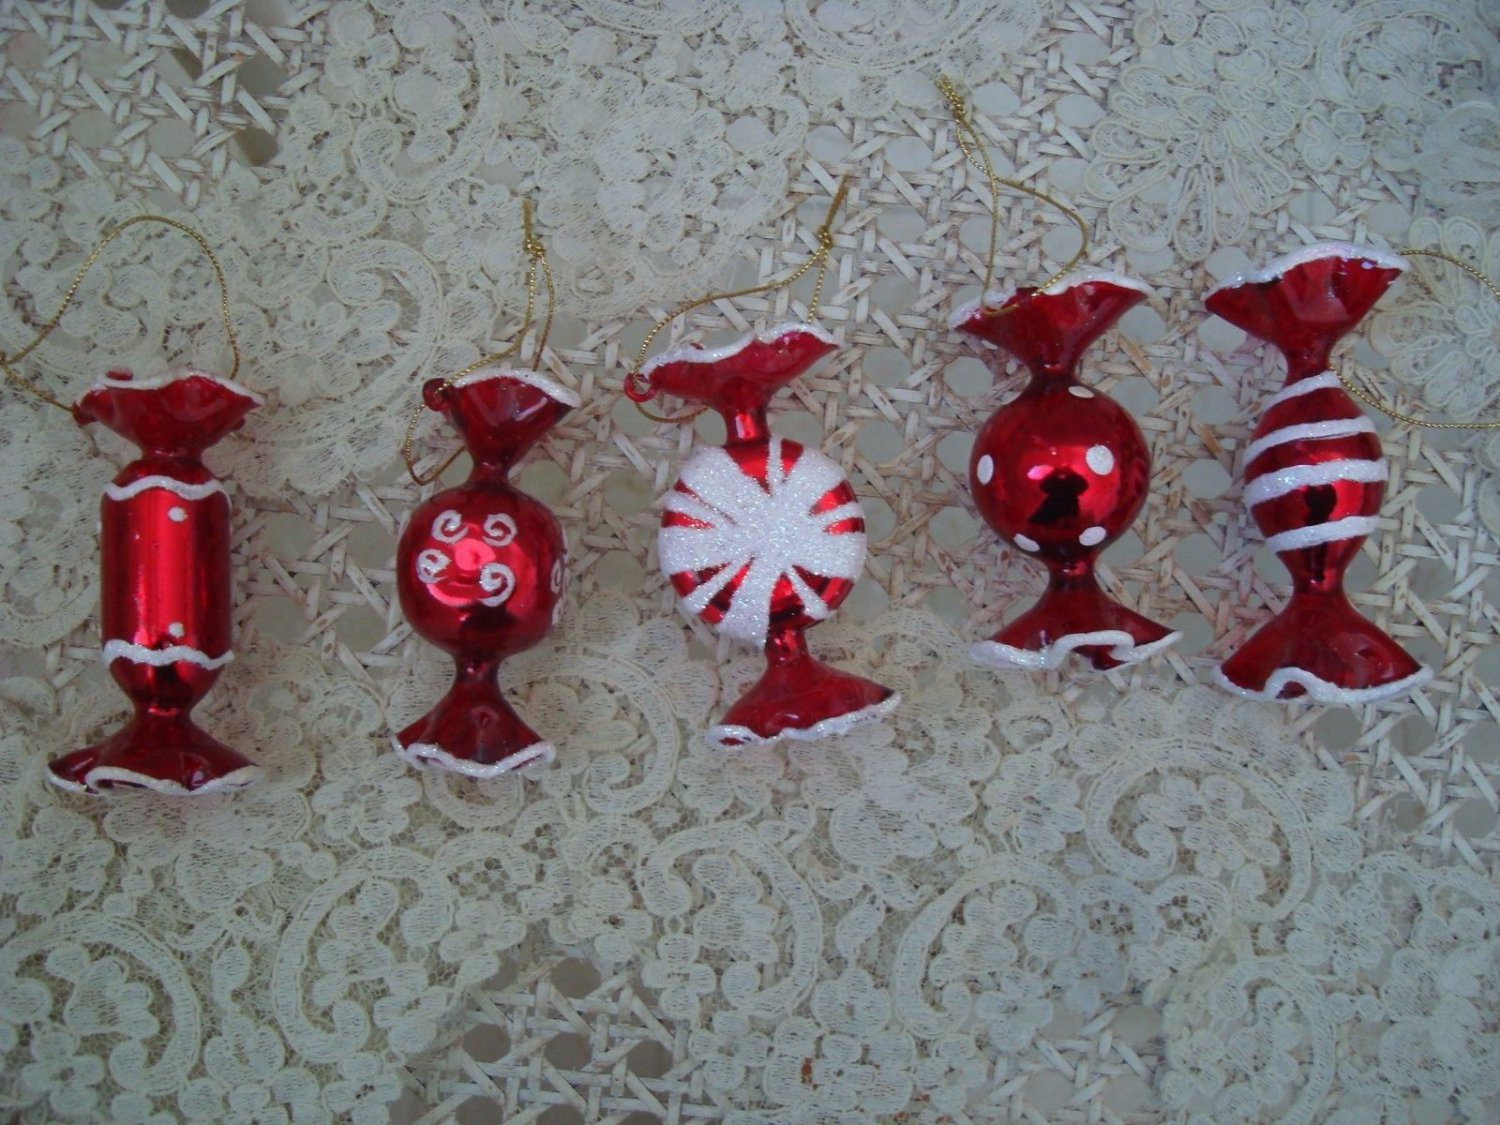 5 BLOWN GLASS PEPPERMINT CANDY CHRISTMAS ORNAMENTS FROM ITALY WITH GLITTER